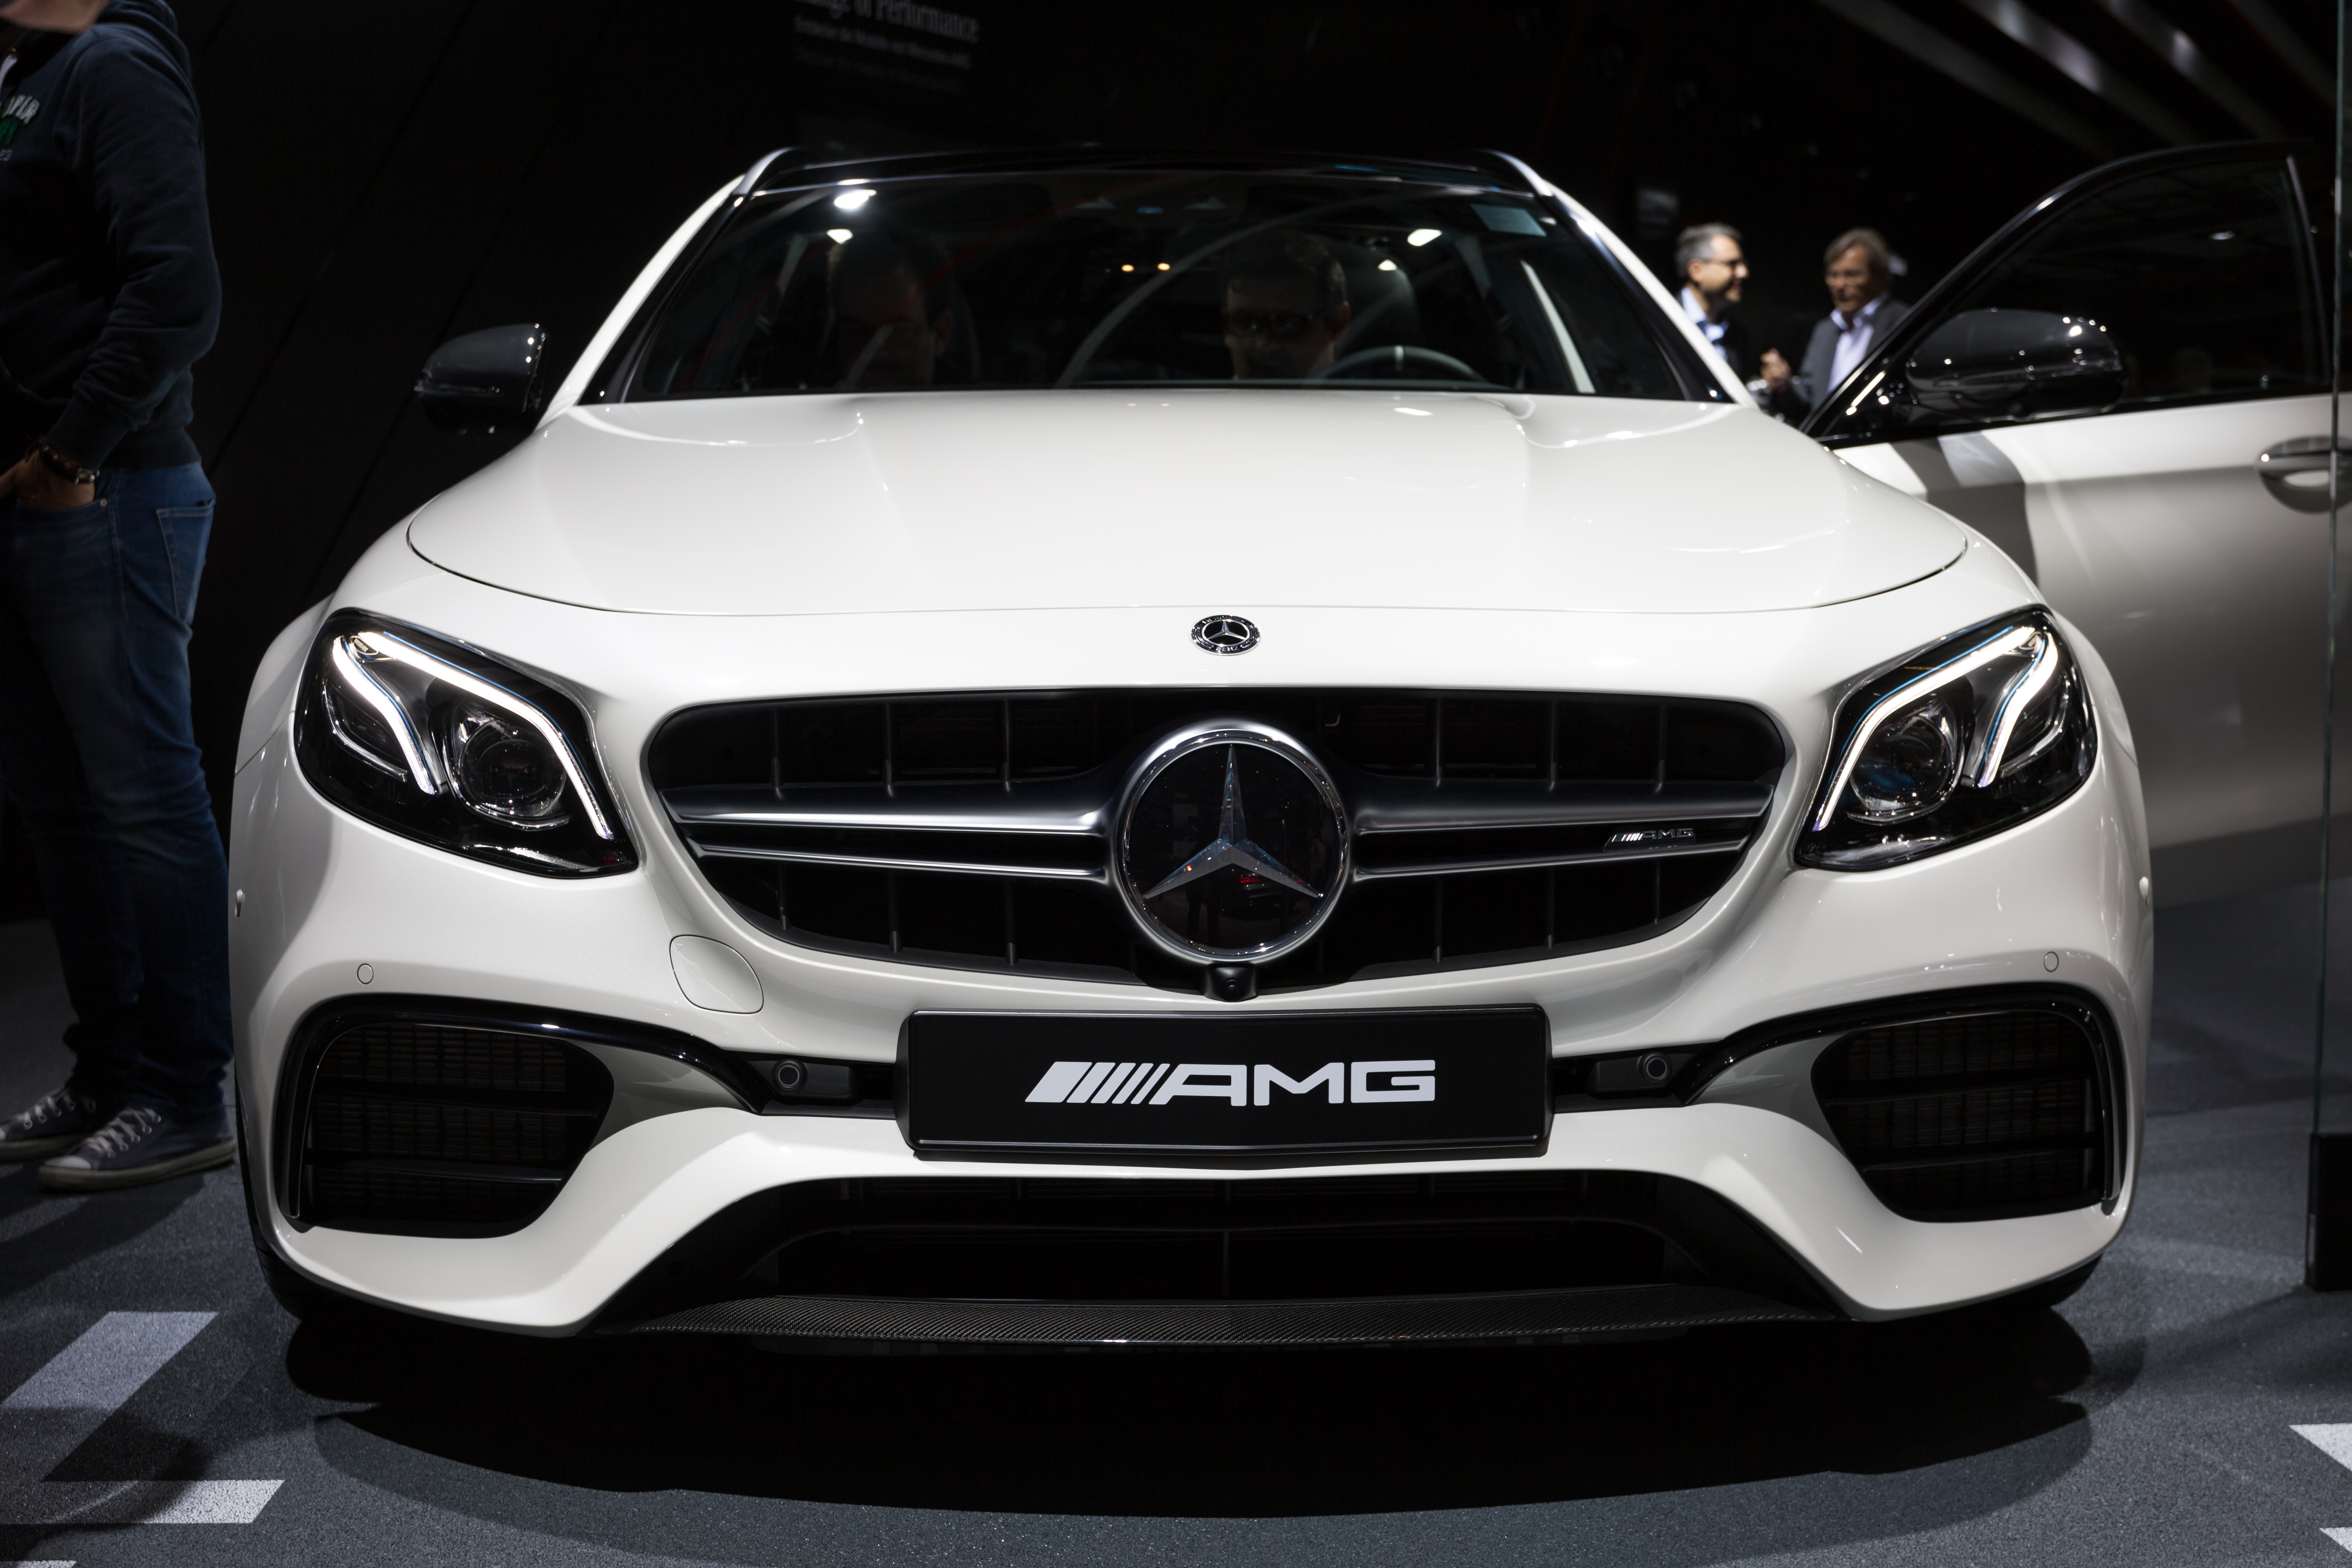 file mercedes amg e 63s t iaa 2017 frankfurt 1y7a3017 jpg wikimedia commons. Black Bedroom Furniture Sets. Home Design Ideas